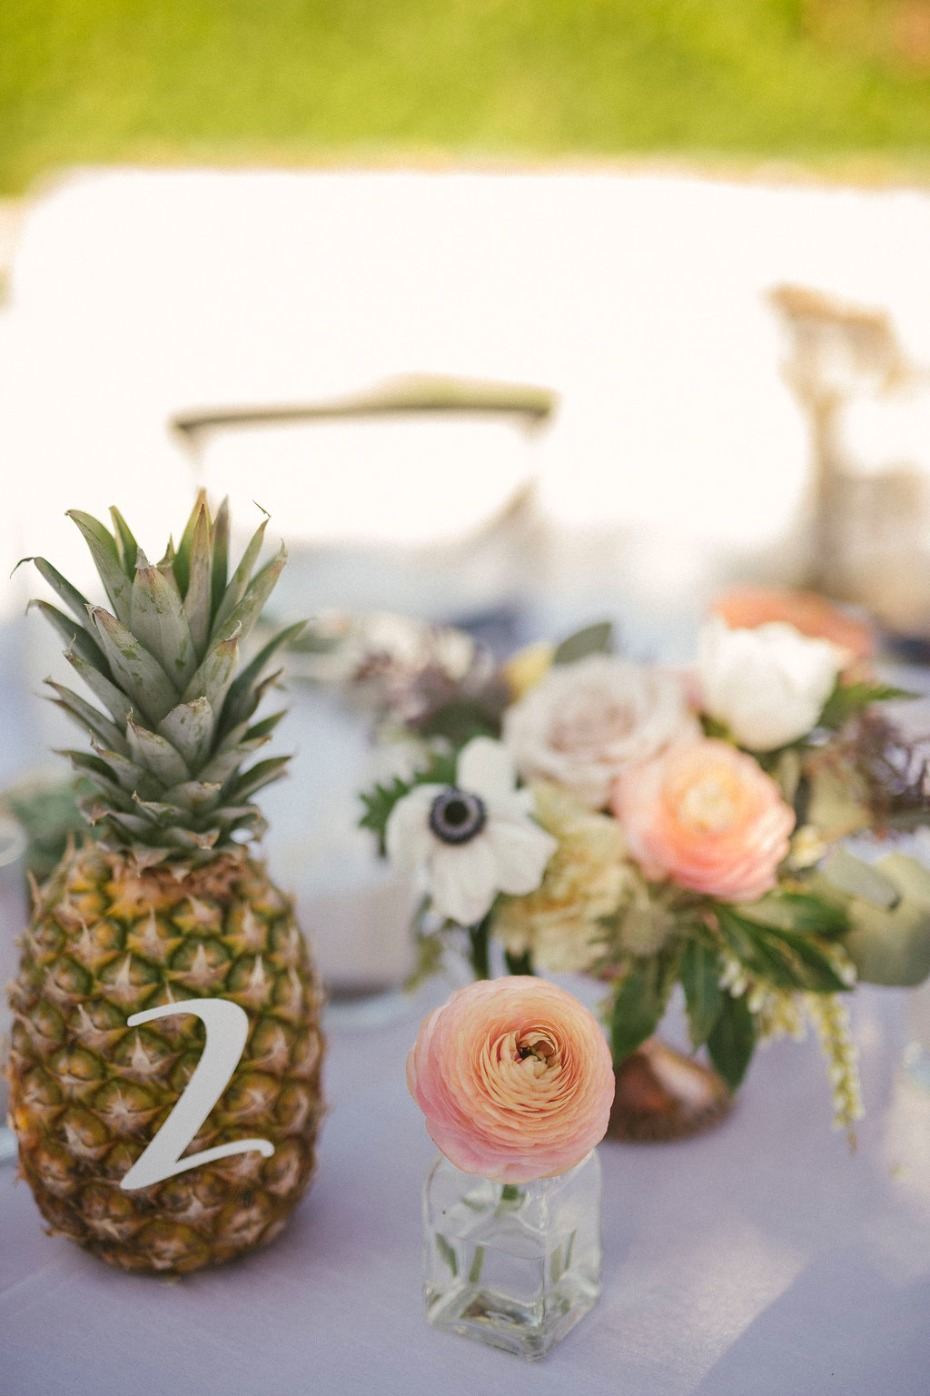 Use a pineapple for table numbers